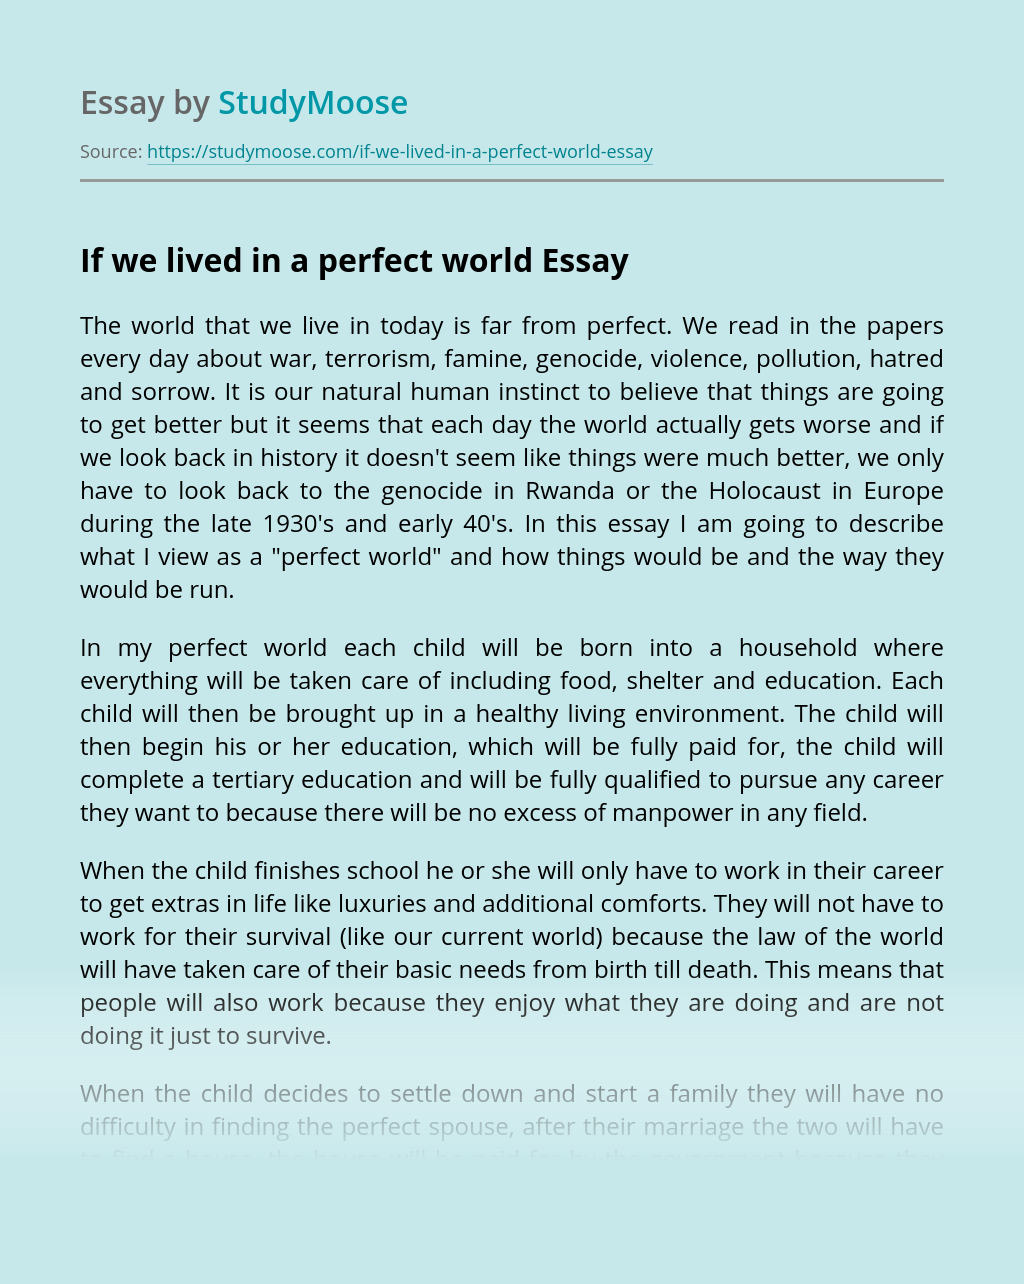 If we lived in a perfect world